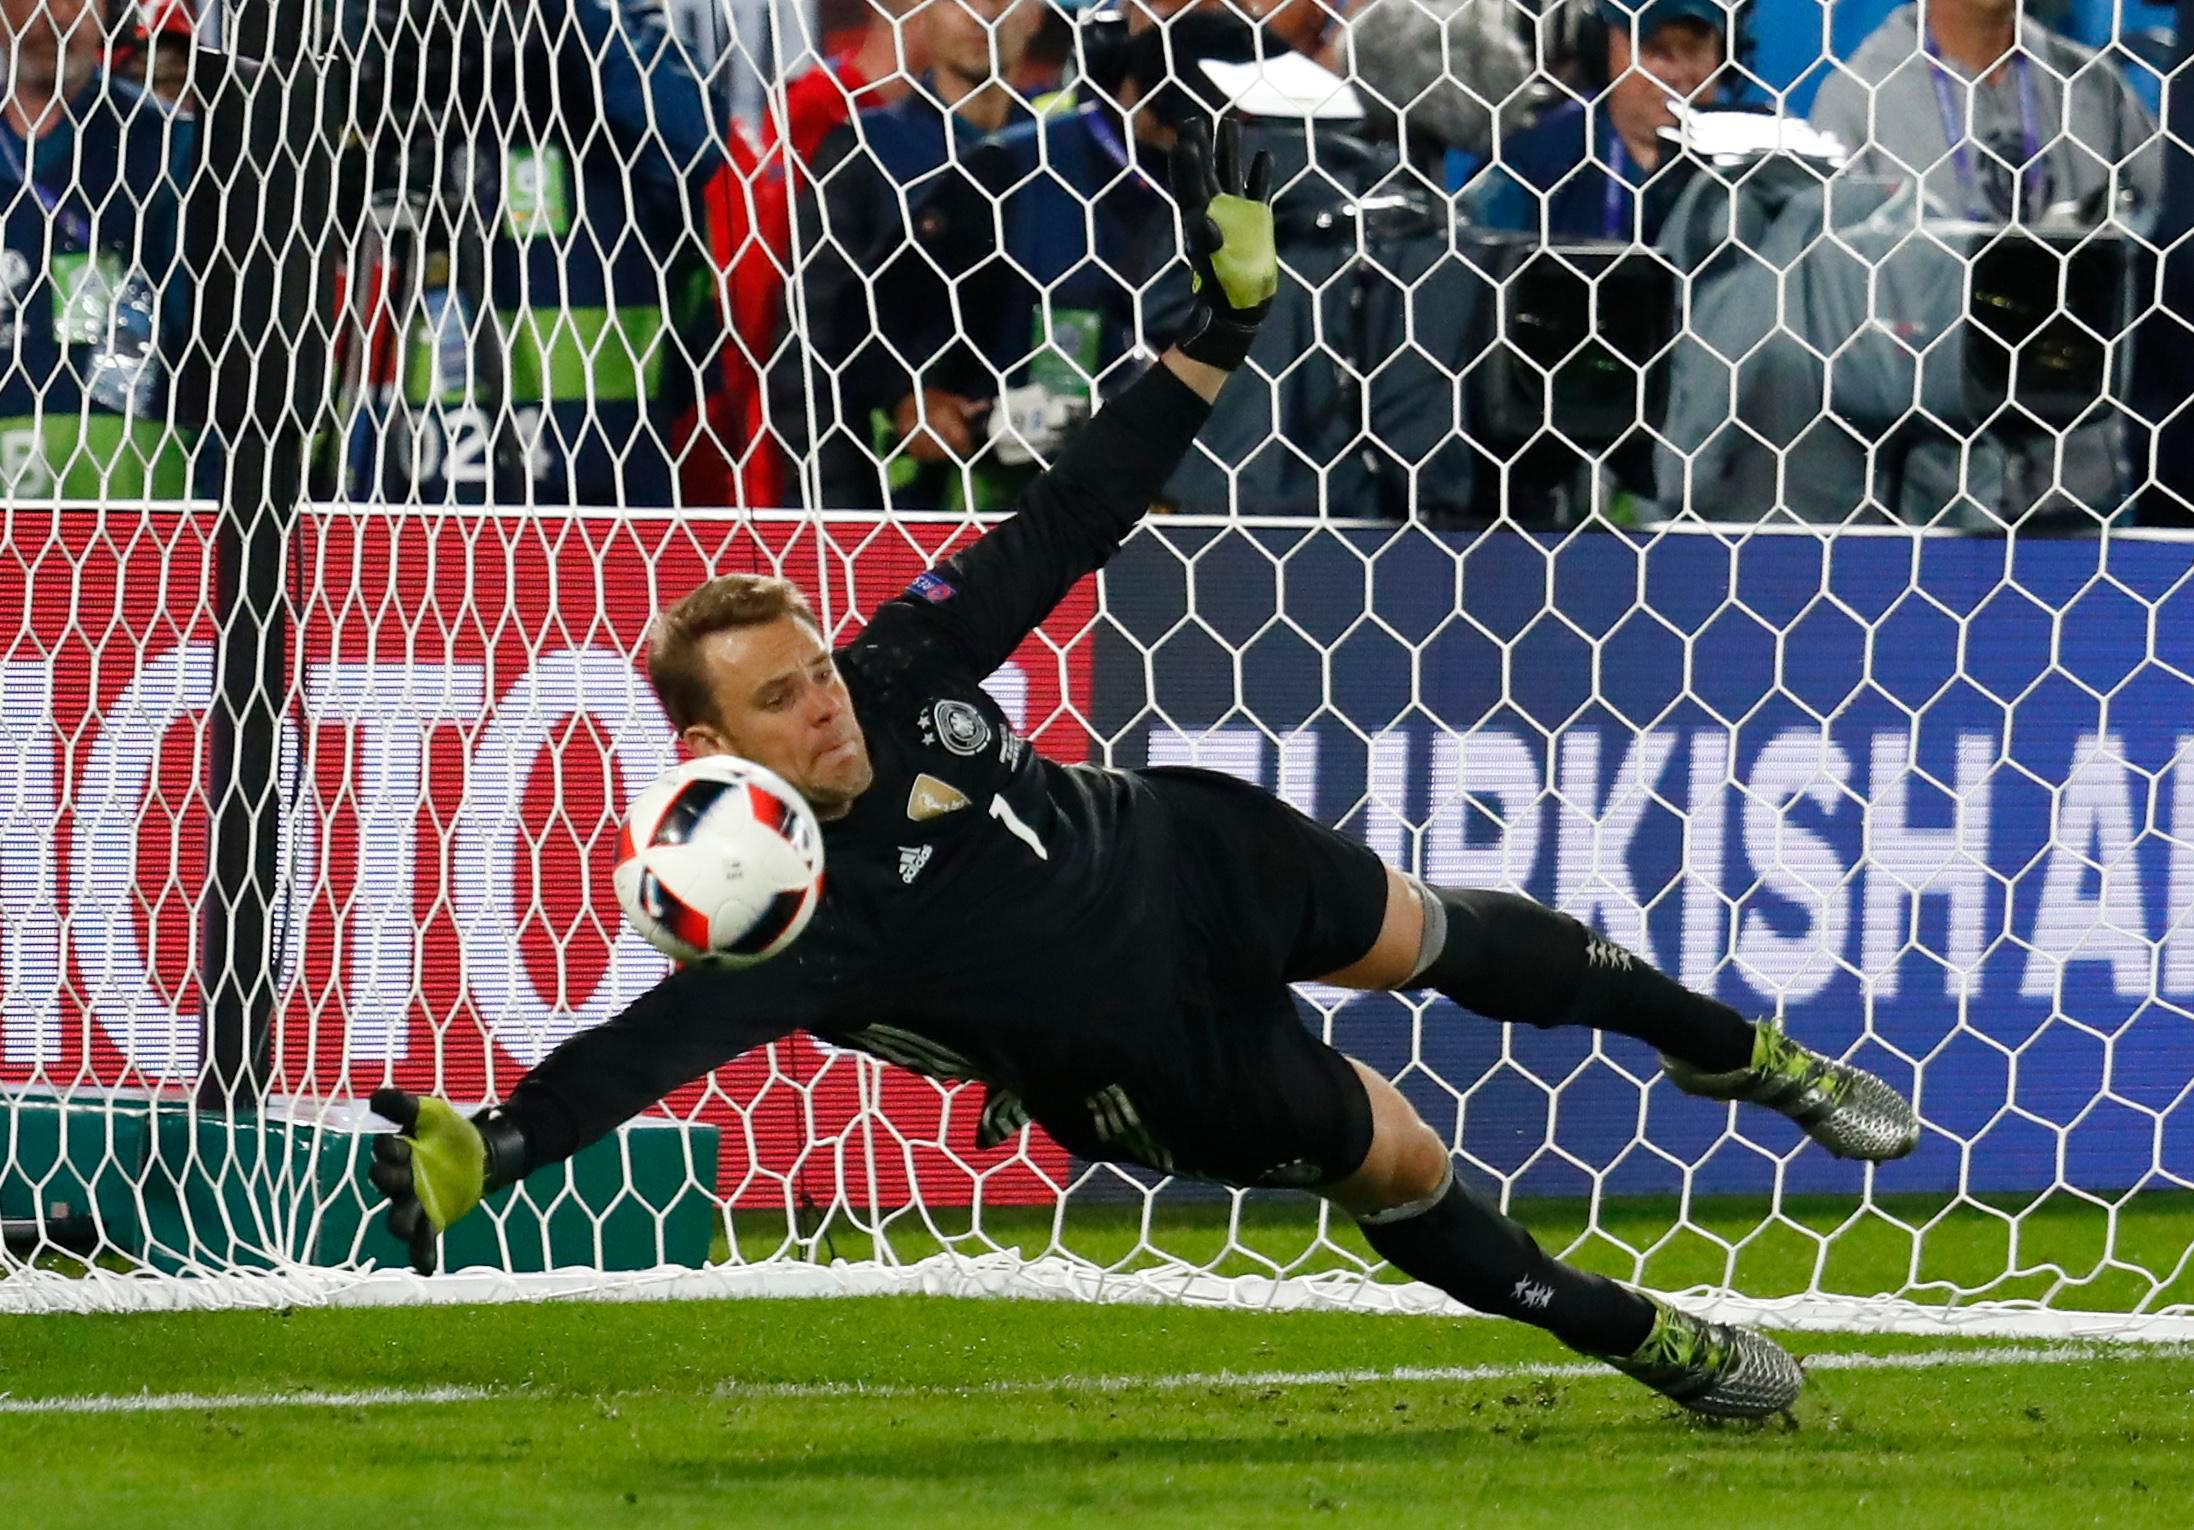 bayern munich and germany goalkeeper manuel neuer out for